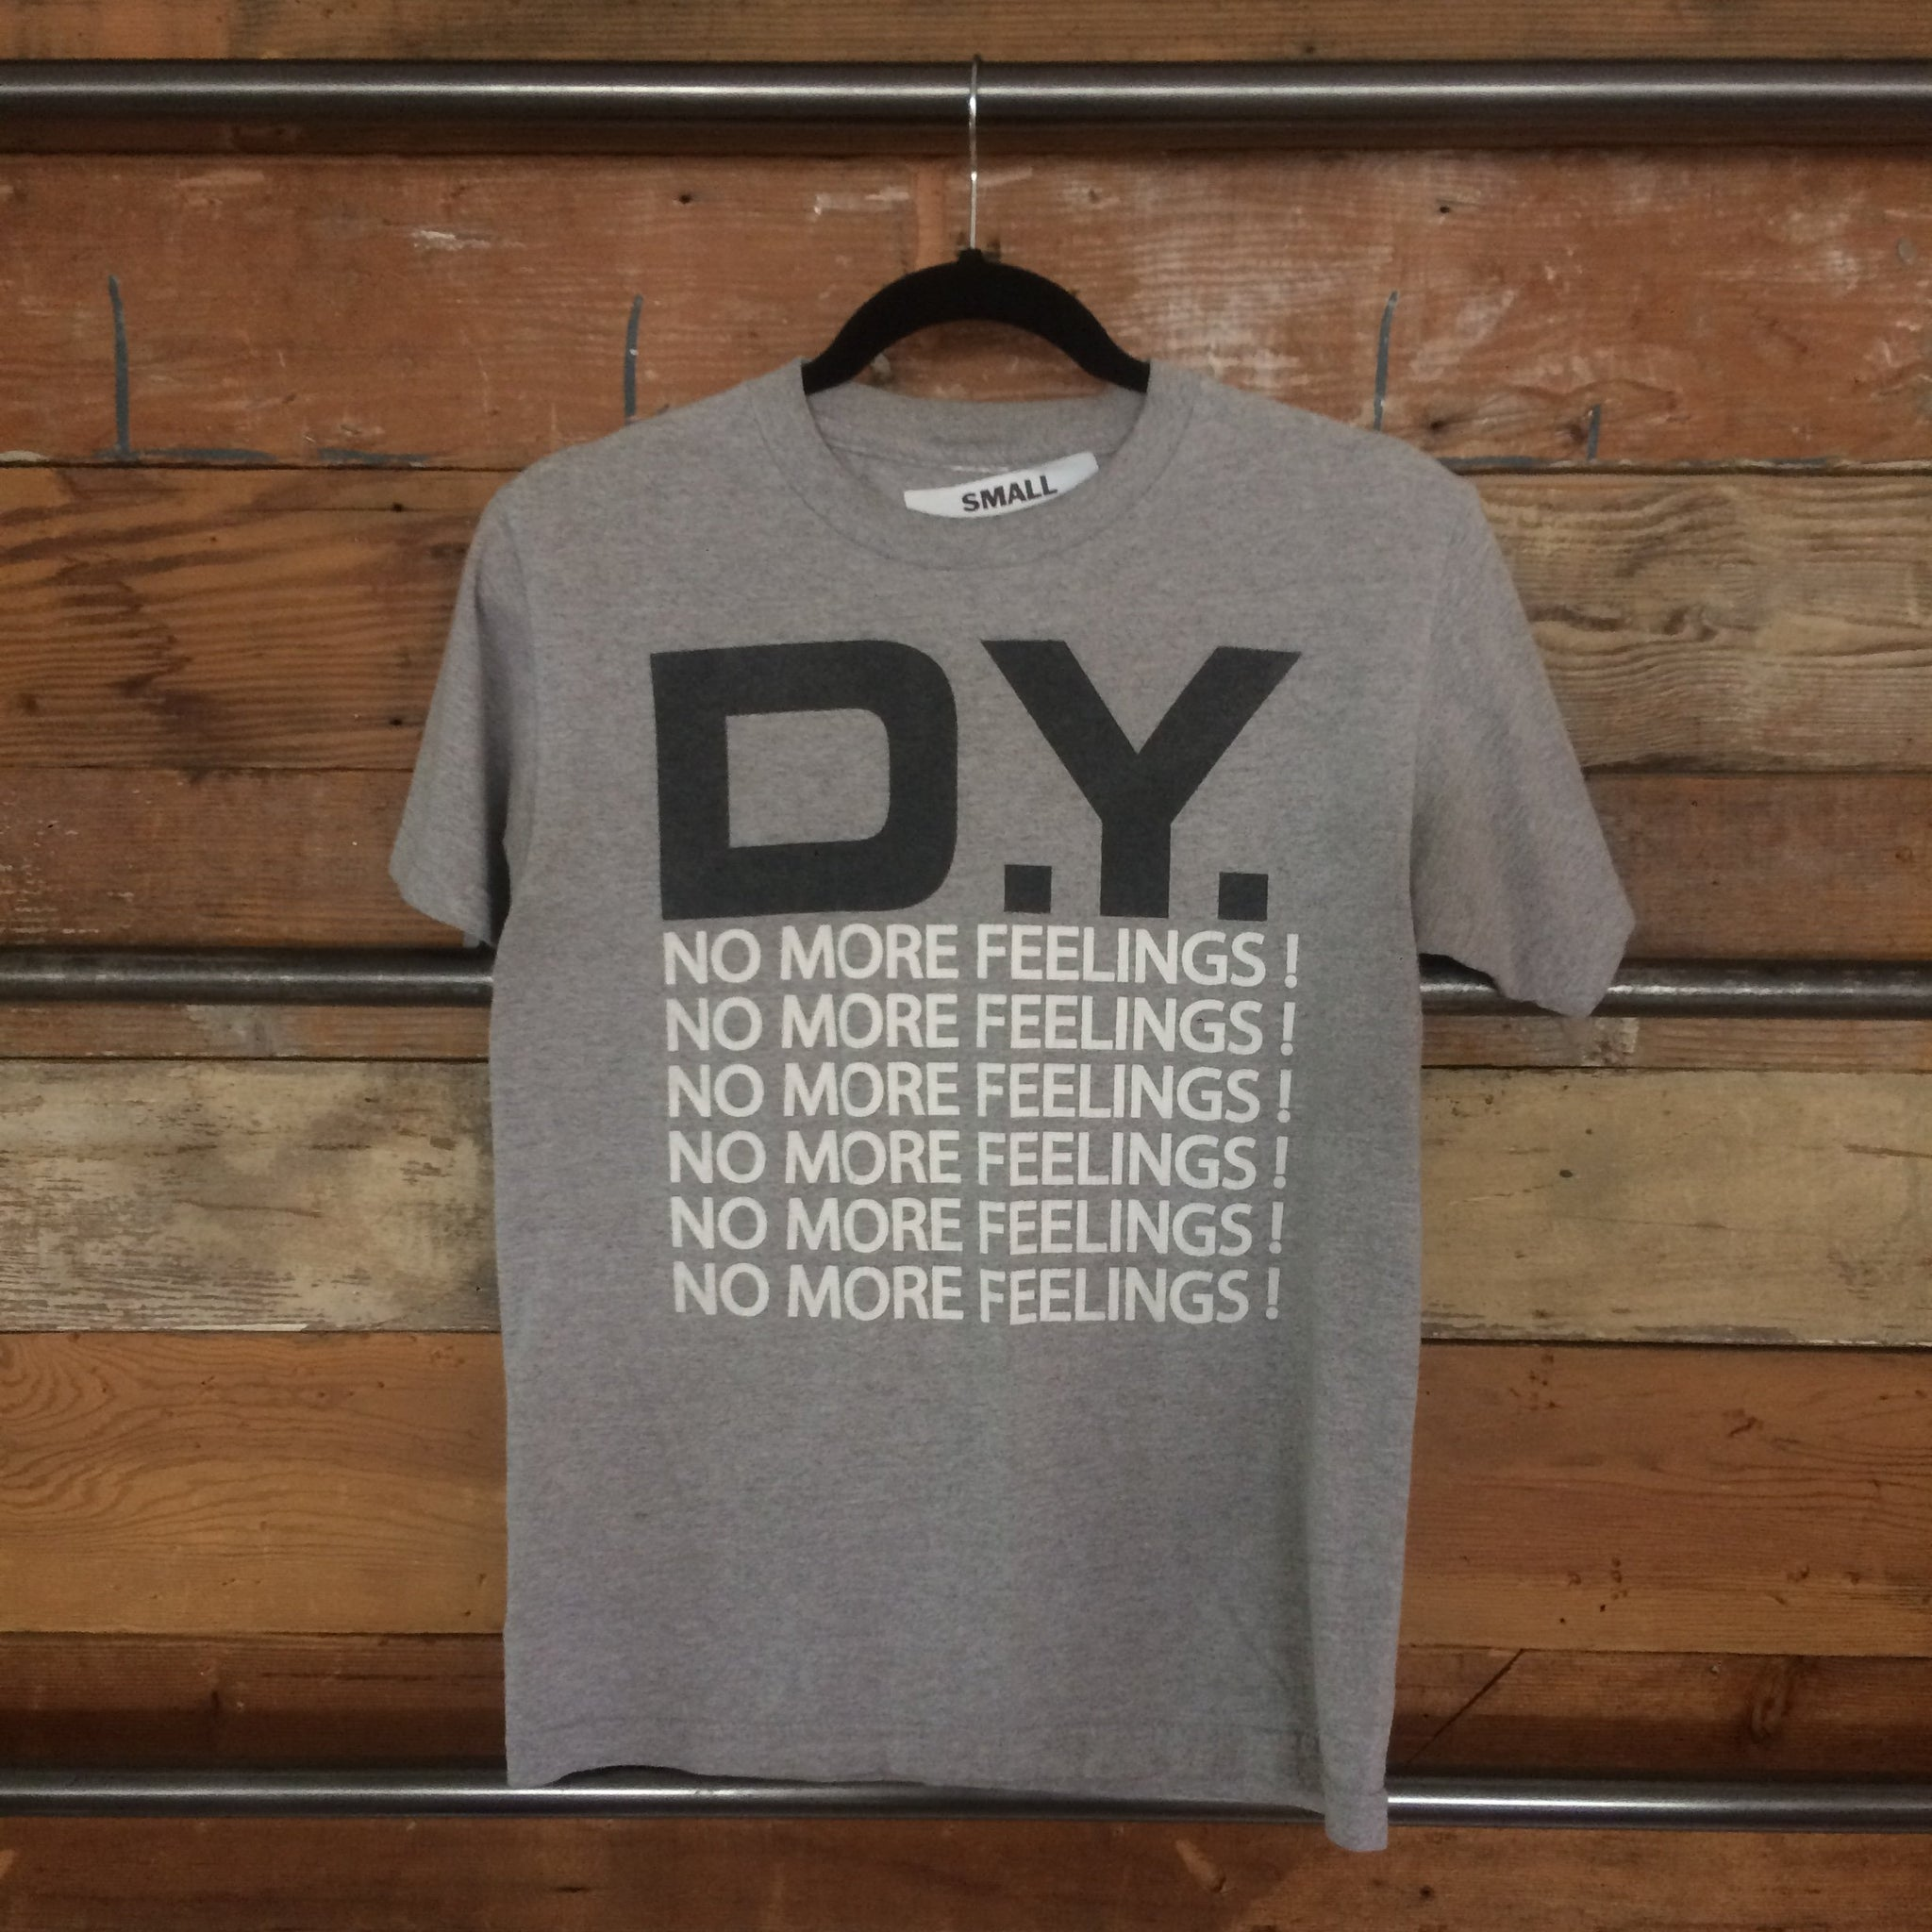 DESPISEYOU - No More Feelings! T-shirt (S)